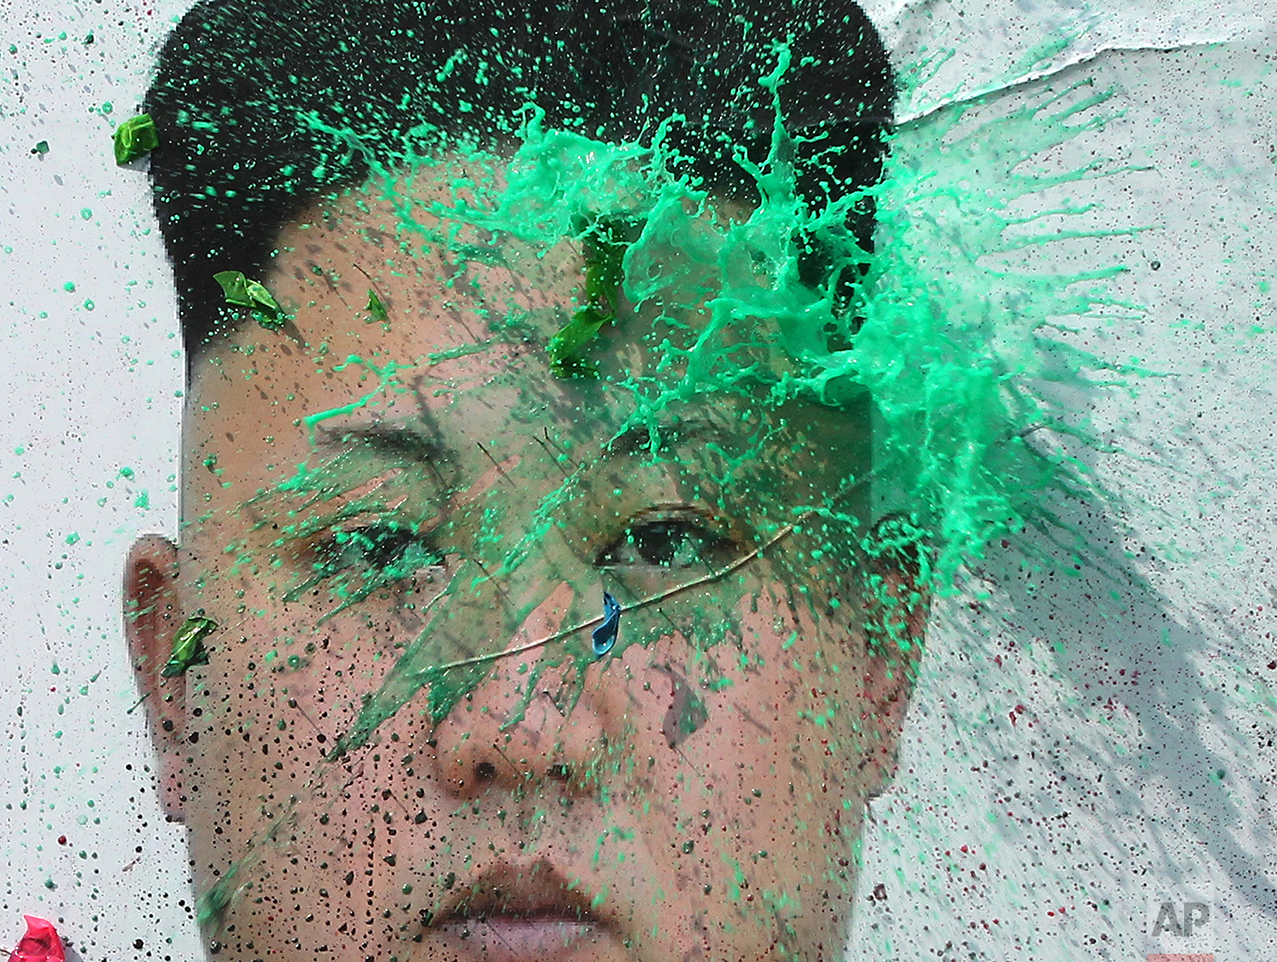 A balloon thrown by a North Korean defector containing a colored liquid bursts on a portrait of North Korean leader Kim Jong Un during a rally protesting North Korea Wednesday, March 30, 2016, in Seoul, South Korea. (AP Photo/Ahn Young-joon)